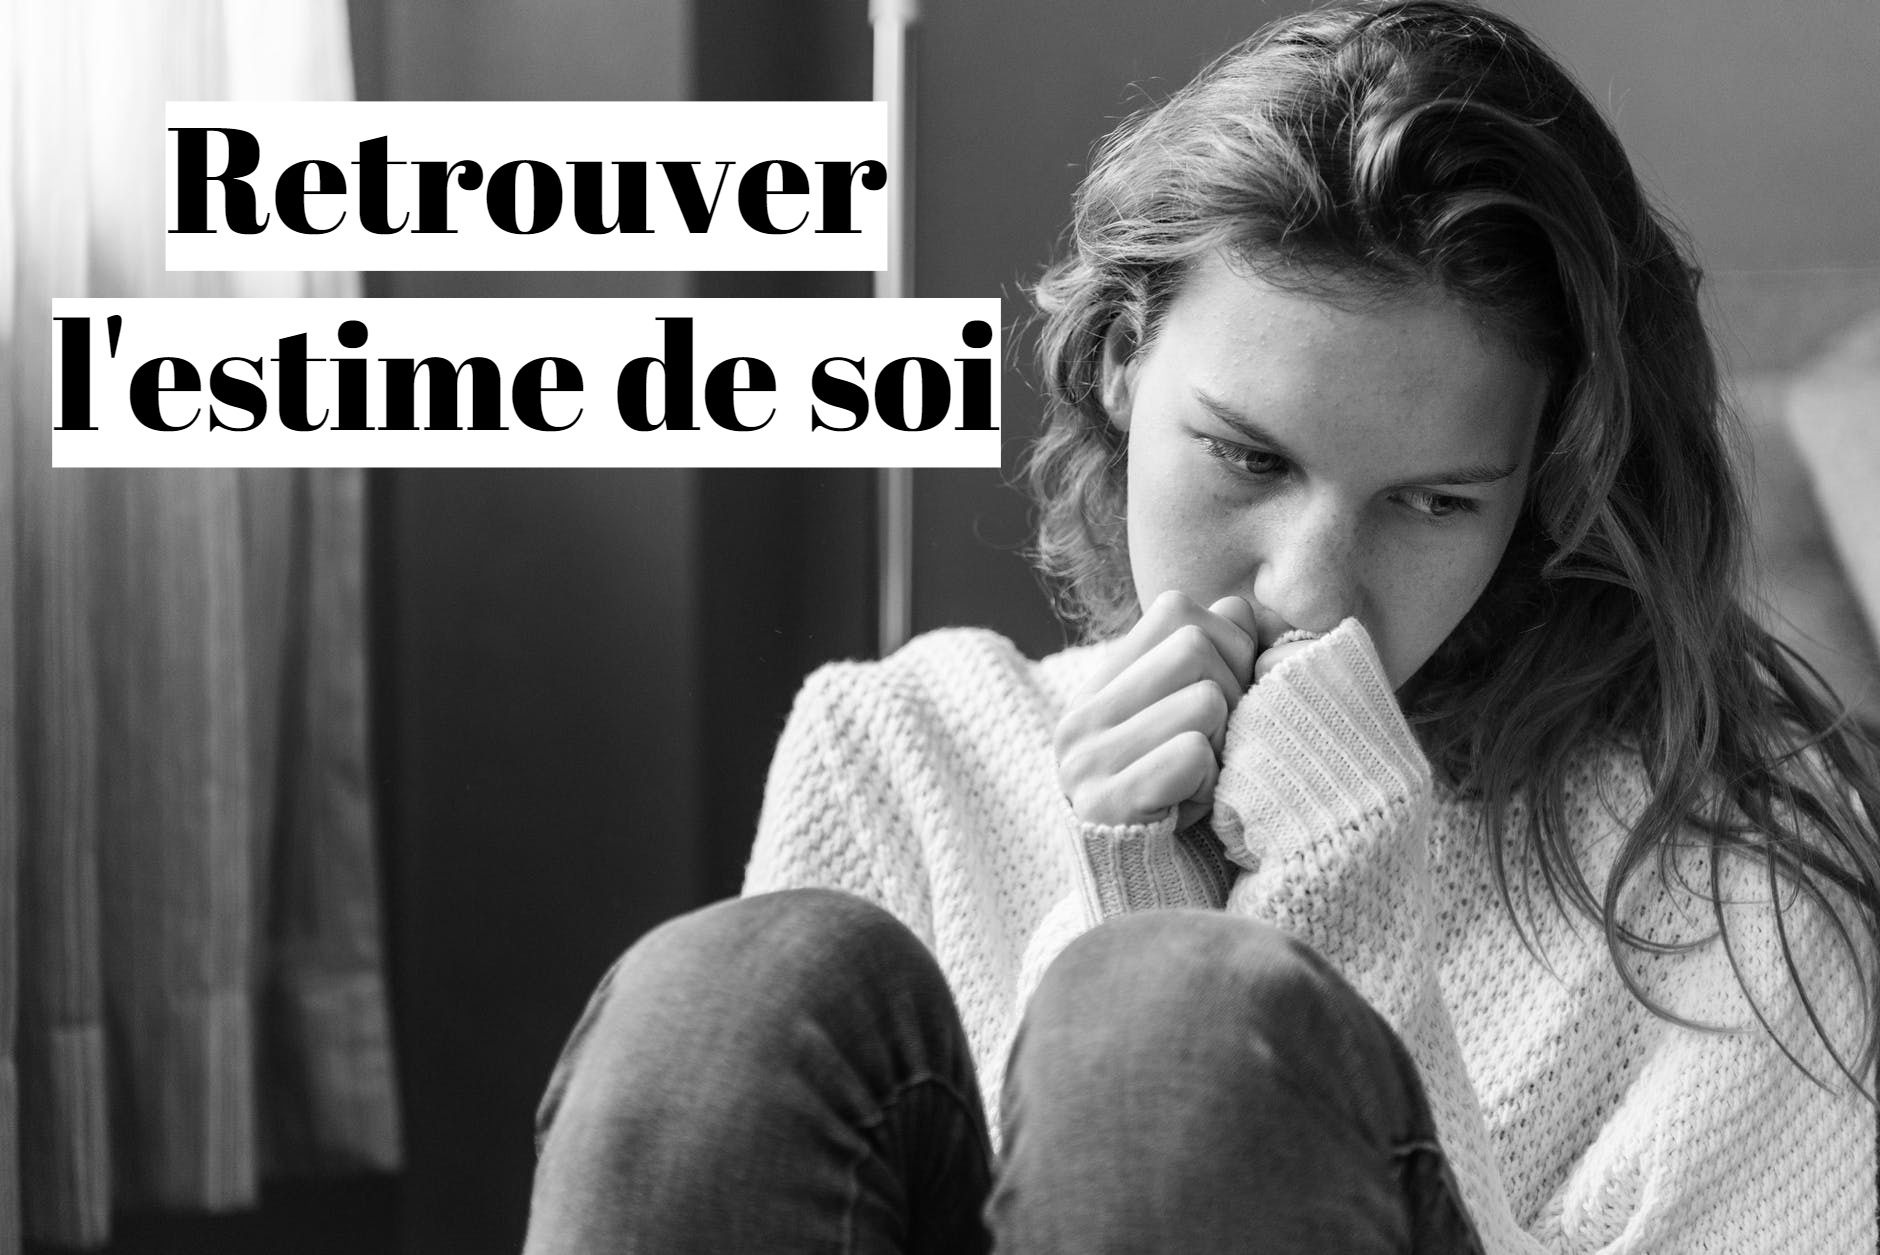 Estime de soi : comment augmenter son amour propre ?